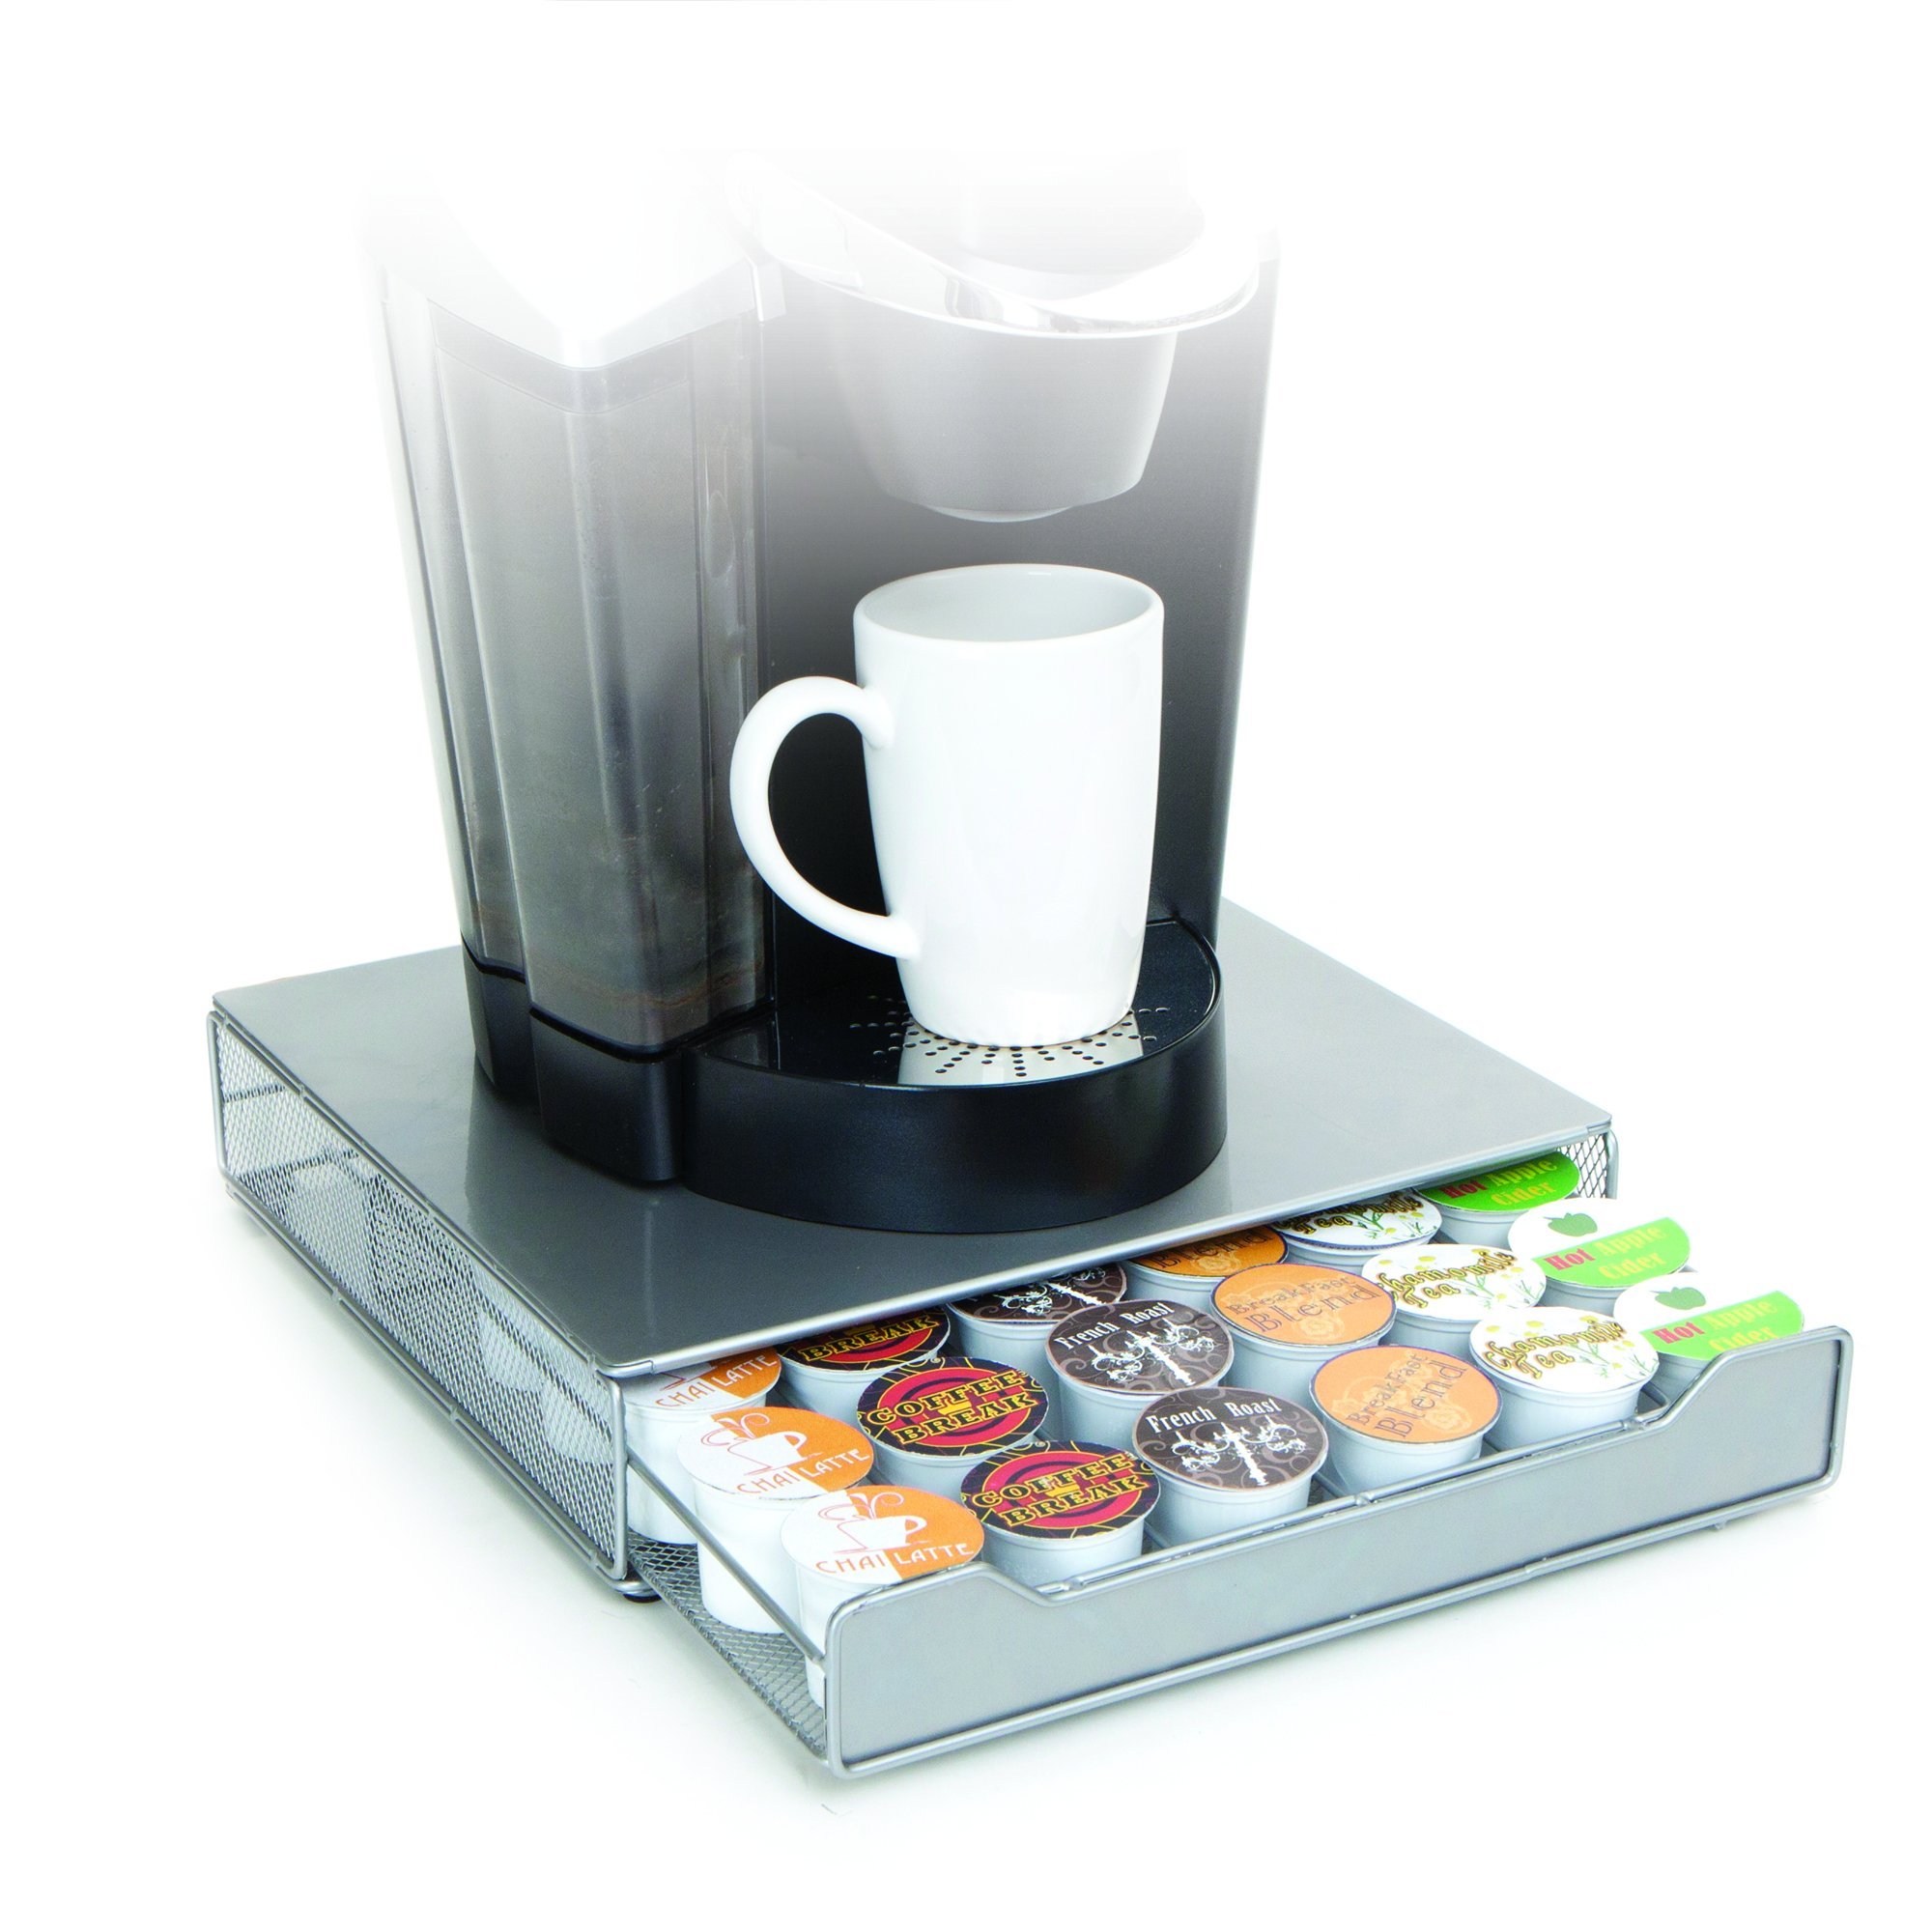 Mind Reader Coffee Pod Storage Drawer for K-Cups, Verismo, Dolce Gusto, Holds 36 K-Cups, 42 Verismo, Silver by Mind Reader